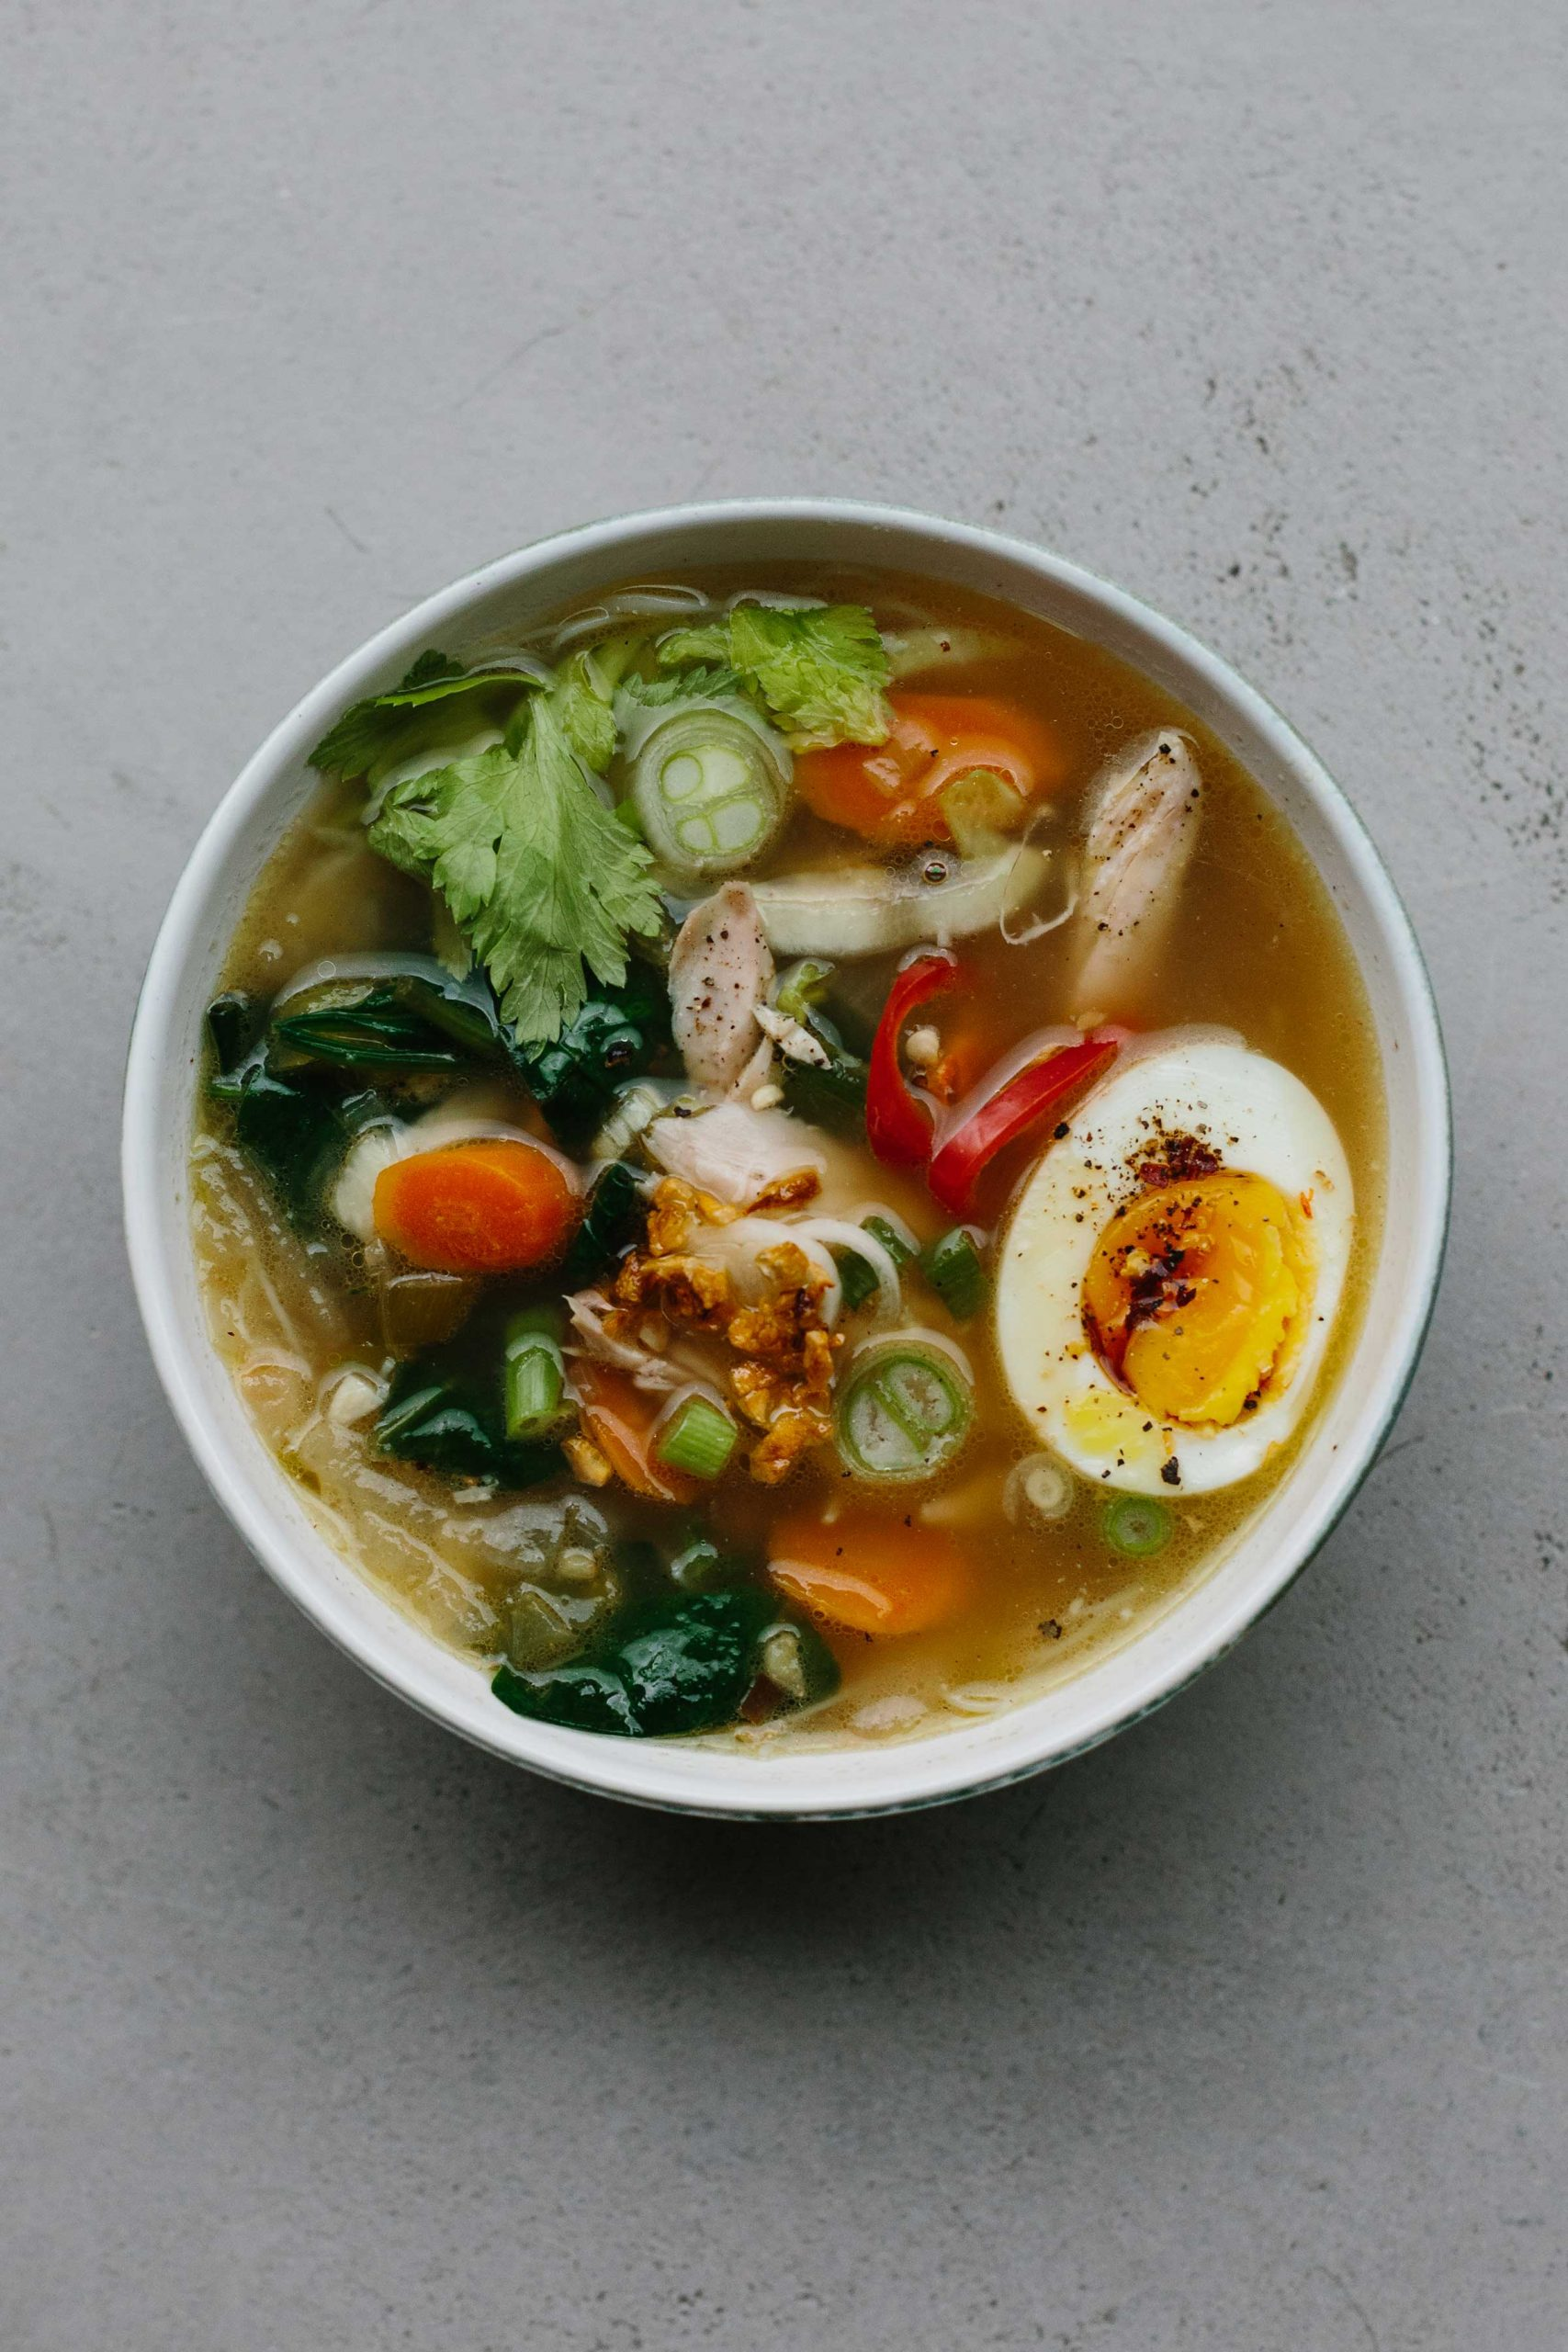 chicken noodle soup filipino soups waste free recipe zero waste recipe egg noodles chicken broth recipe